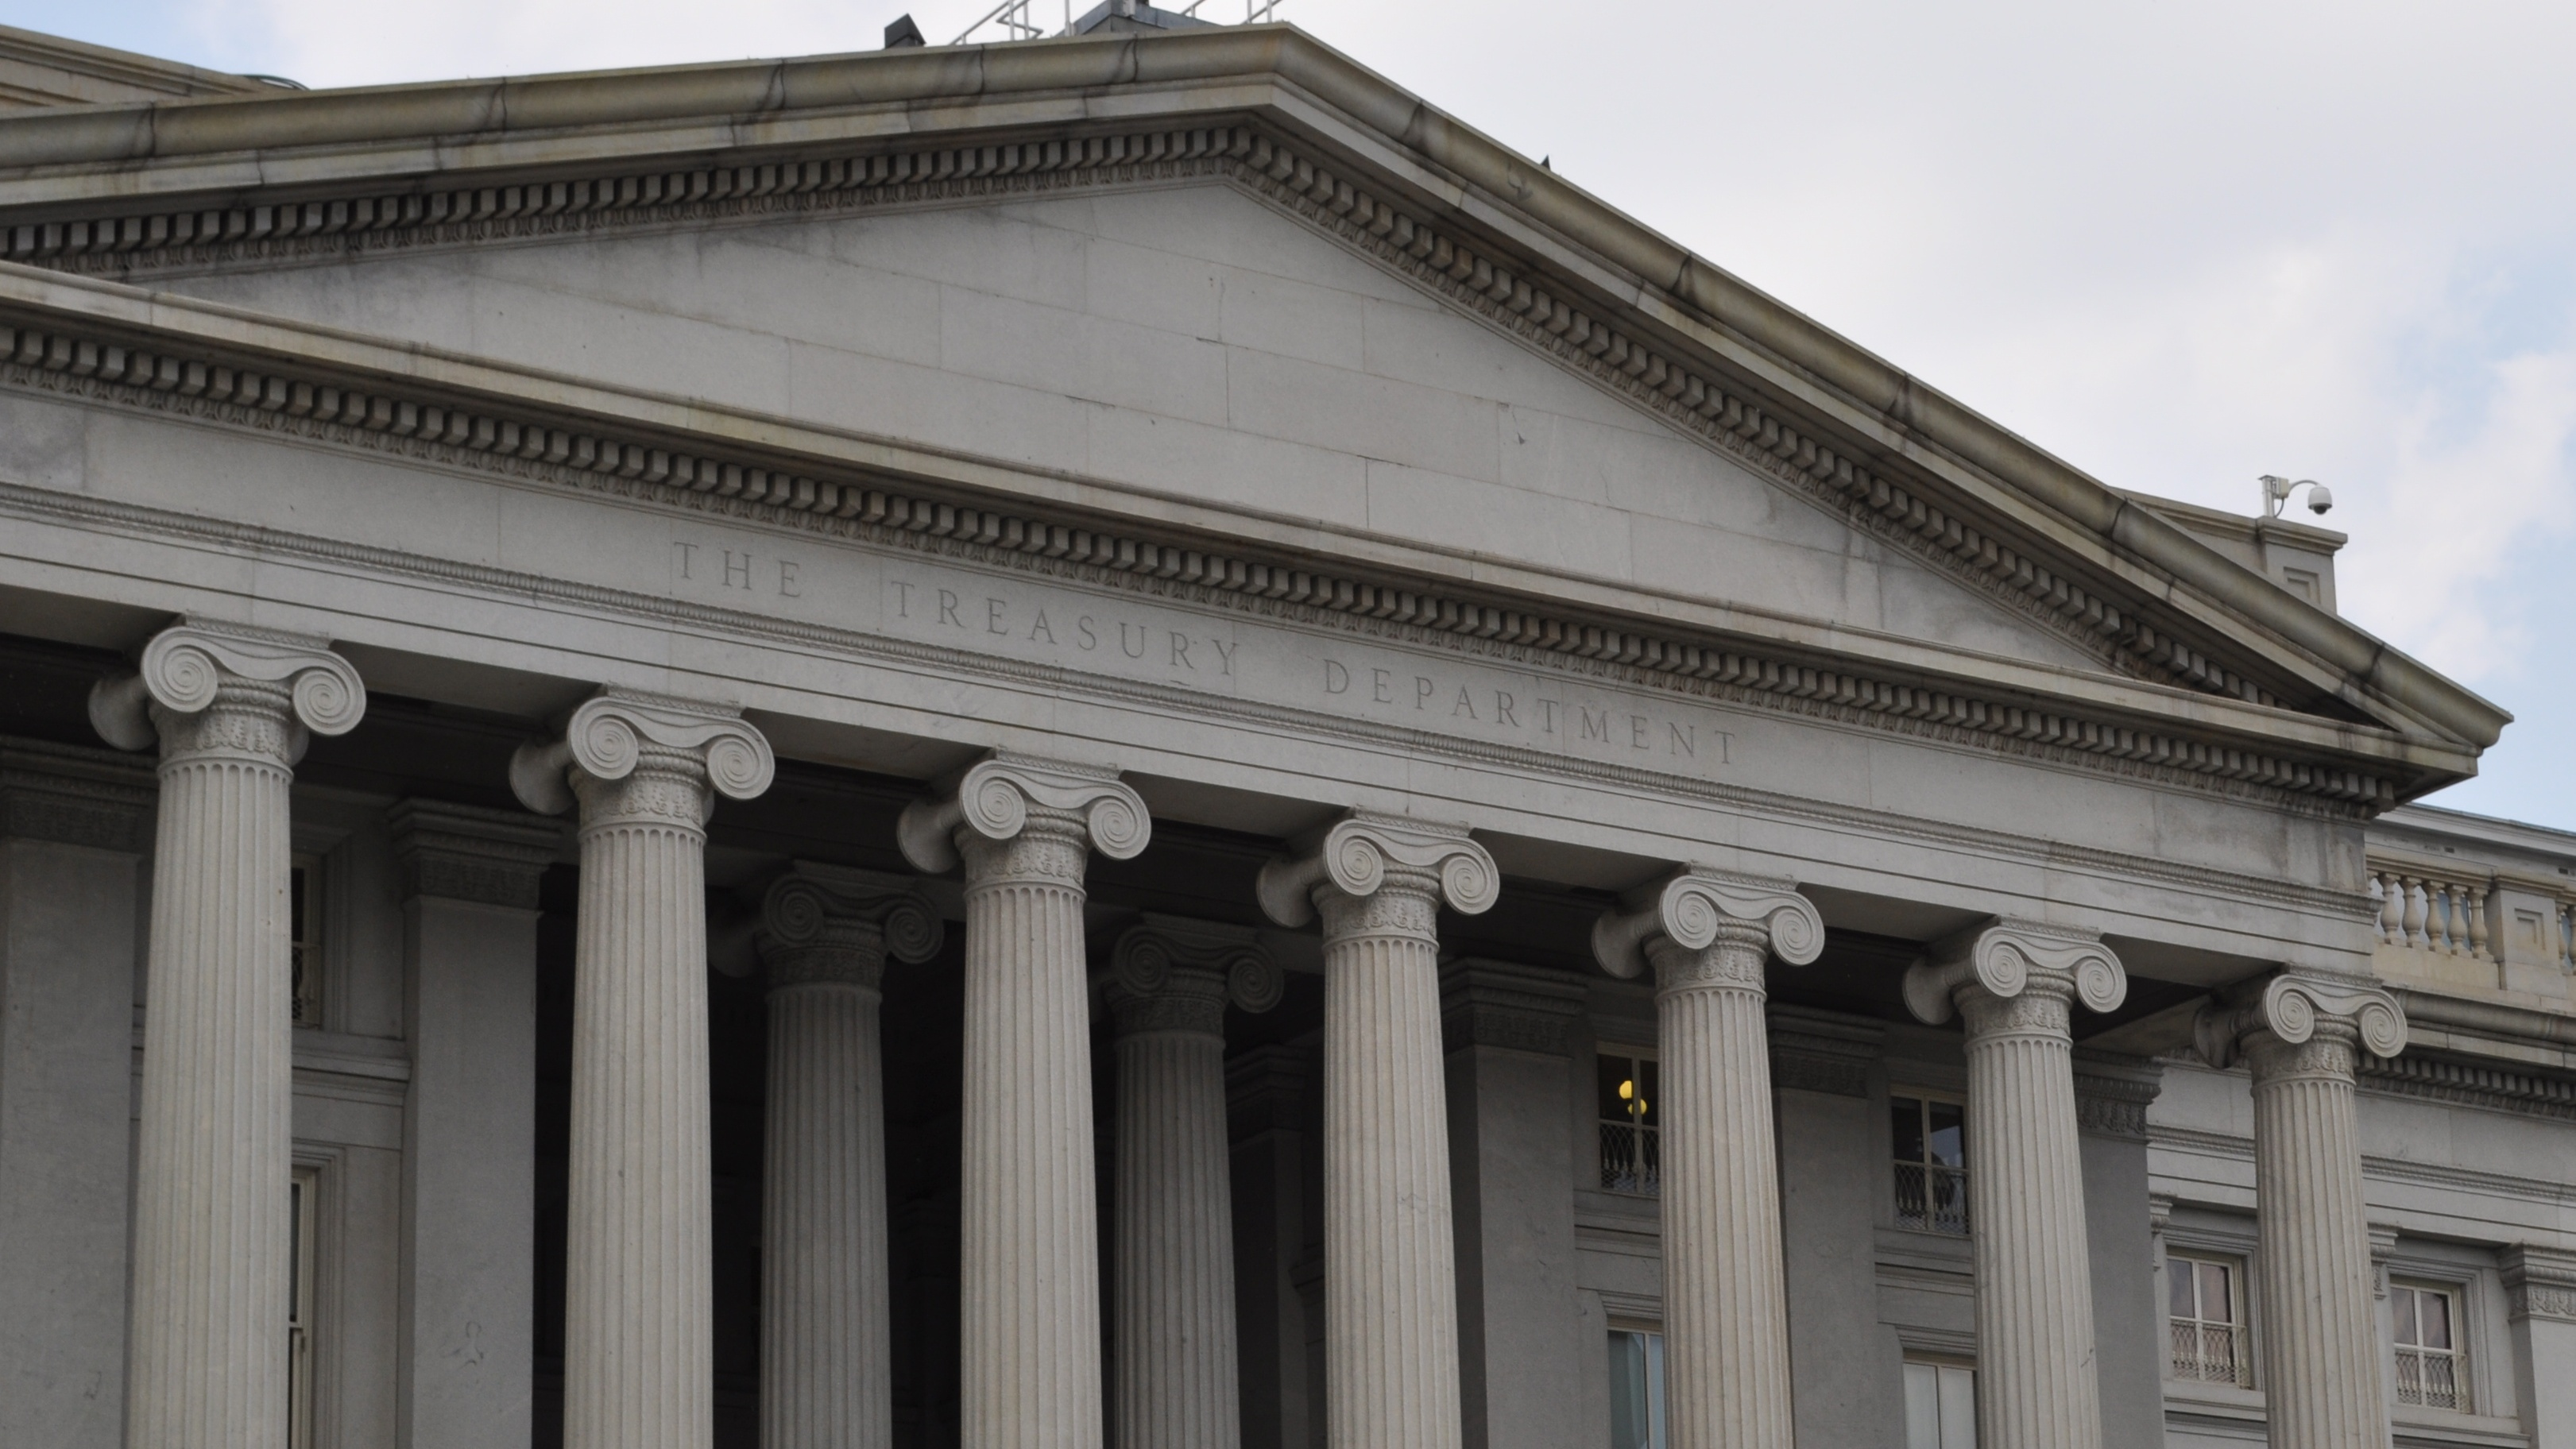 The Department of Treasury's Bureau of Fiscal Service released a playbook Oct. 18 to help improve fraud prevention at all government agencies. (Department of Treasury)